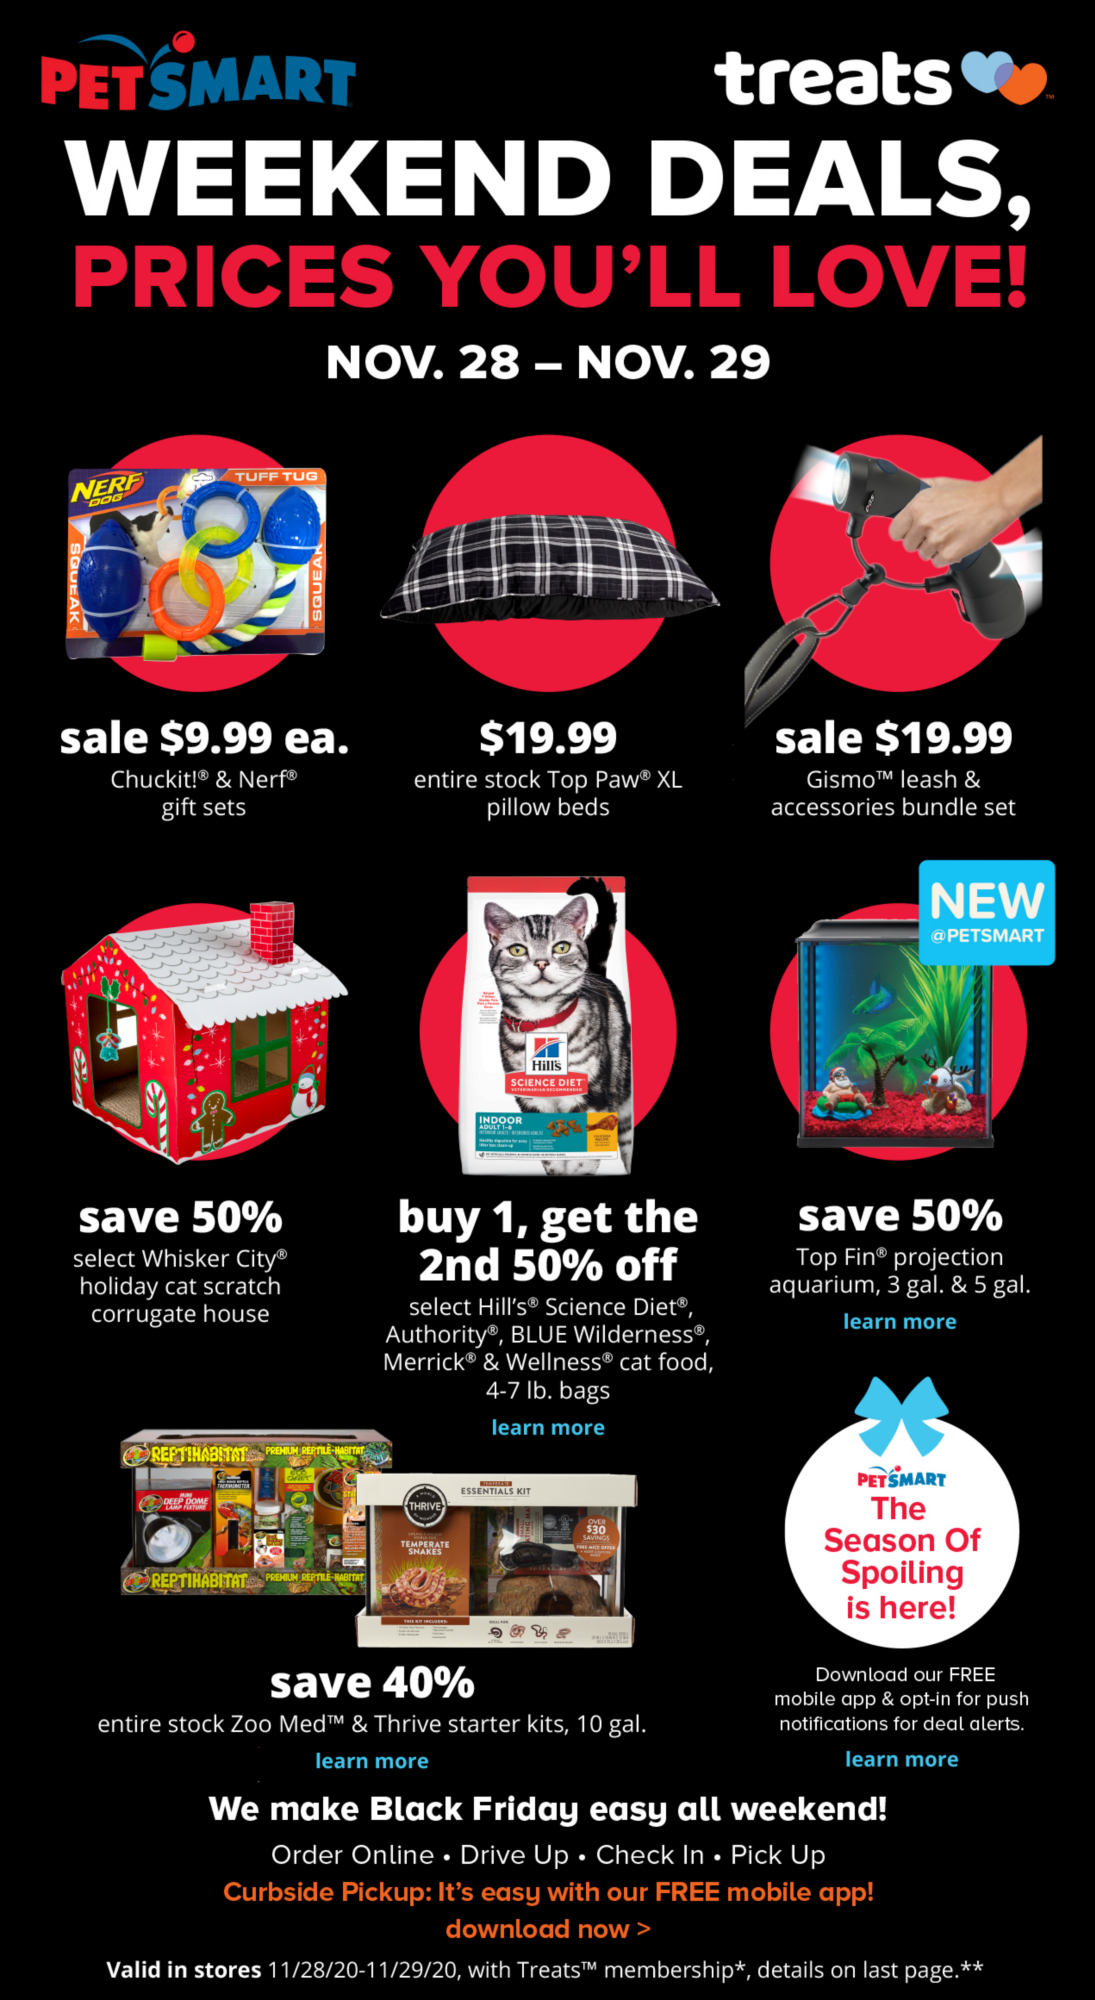 WEEKEND DEALS, PRICES YOU'LL LOVE! - Valid in stores 11/28/20-11/29/20 with Treats membership*, details on last page.**